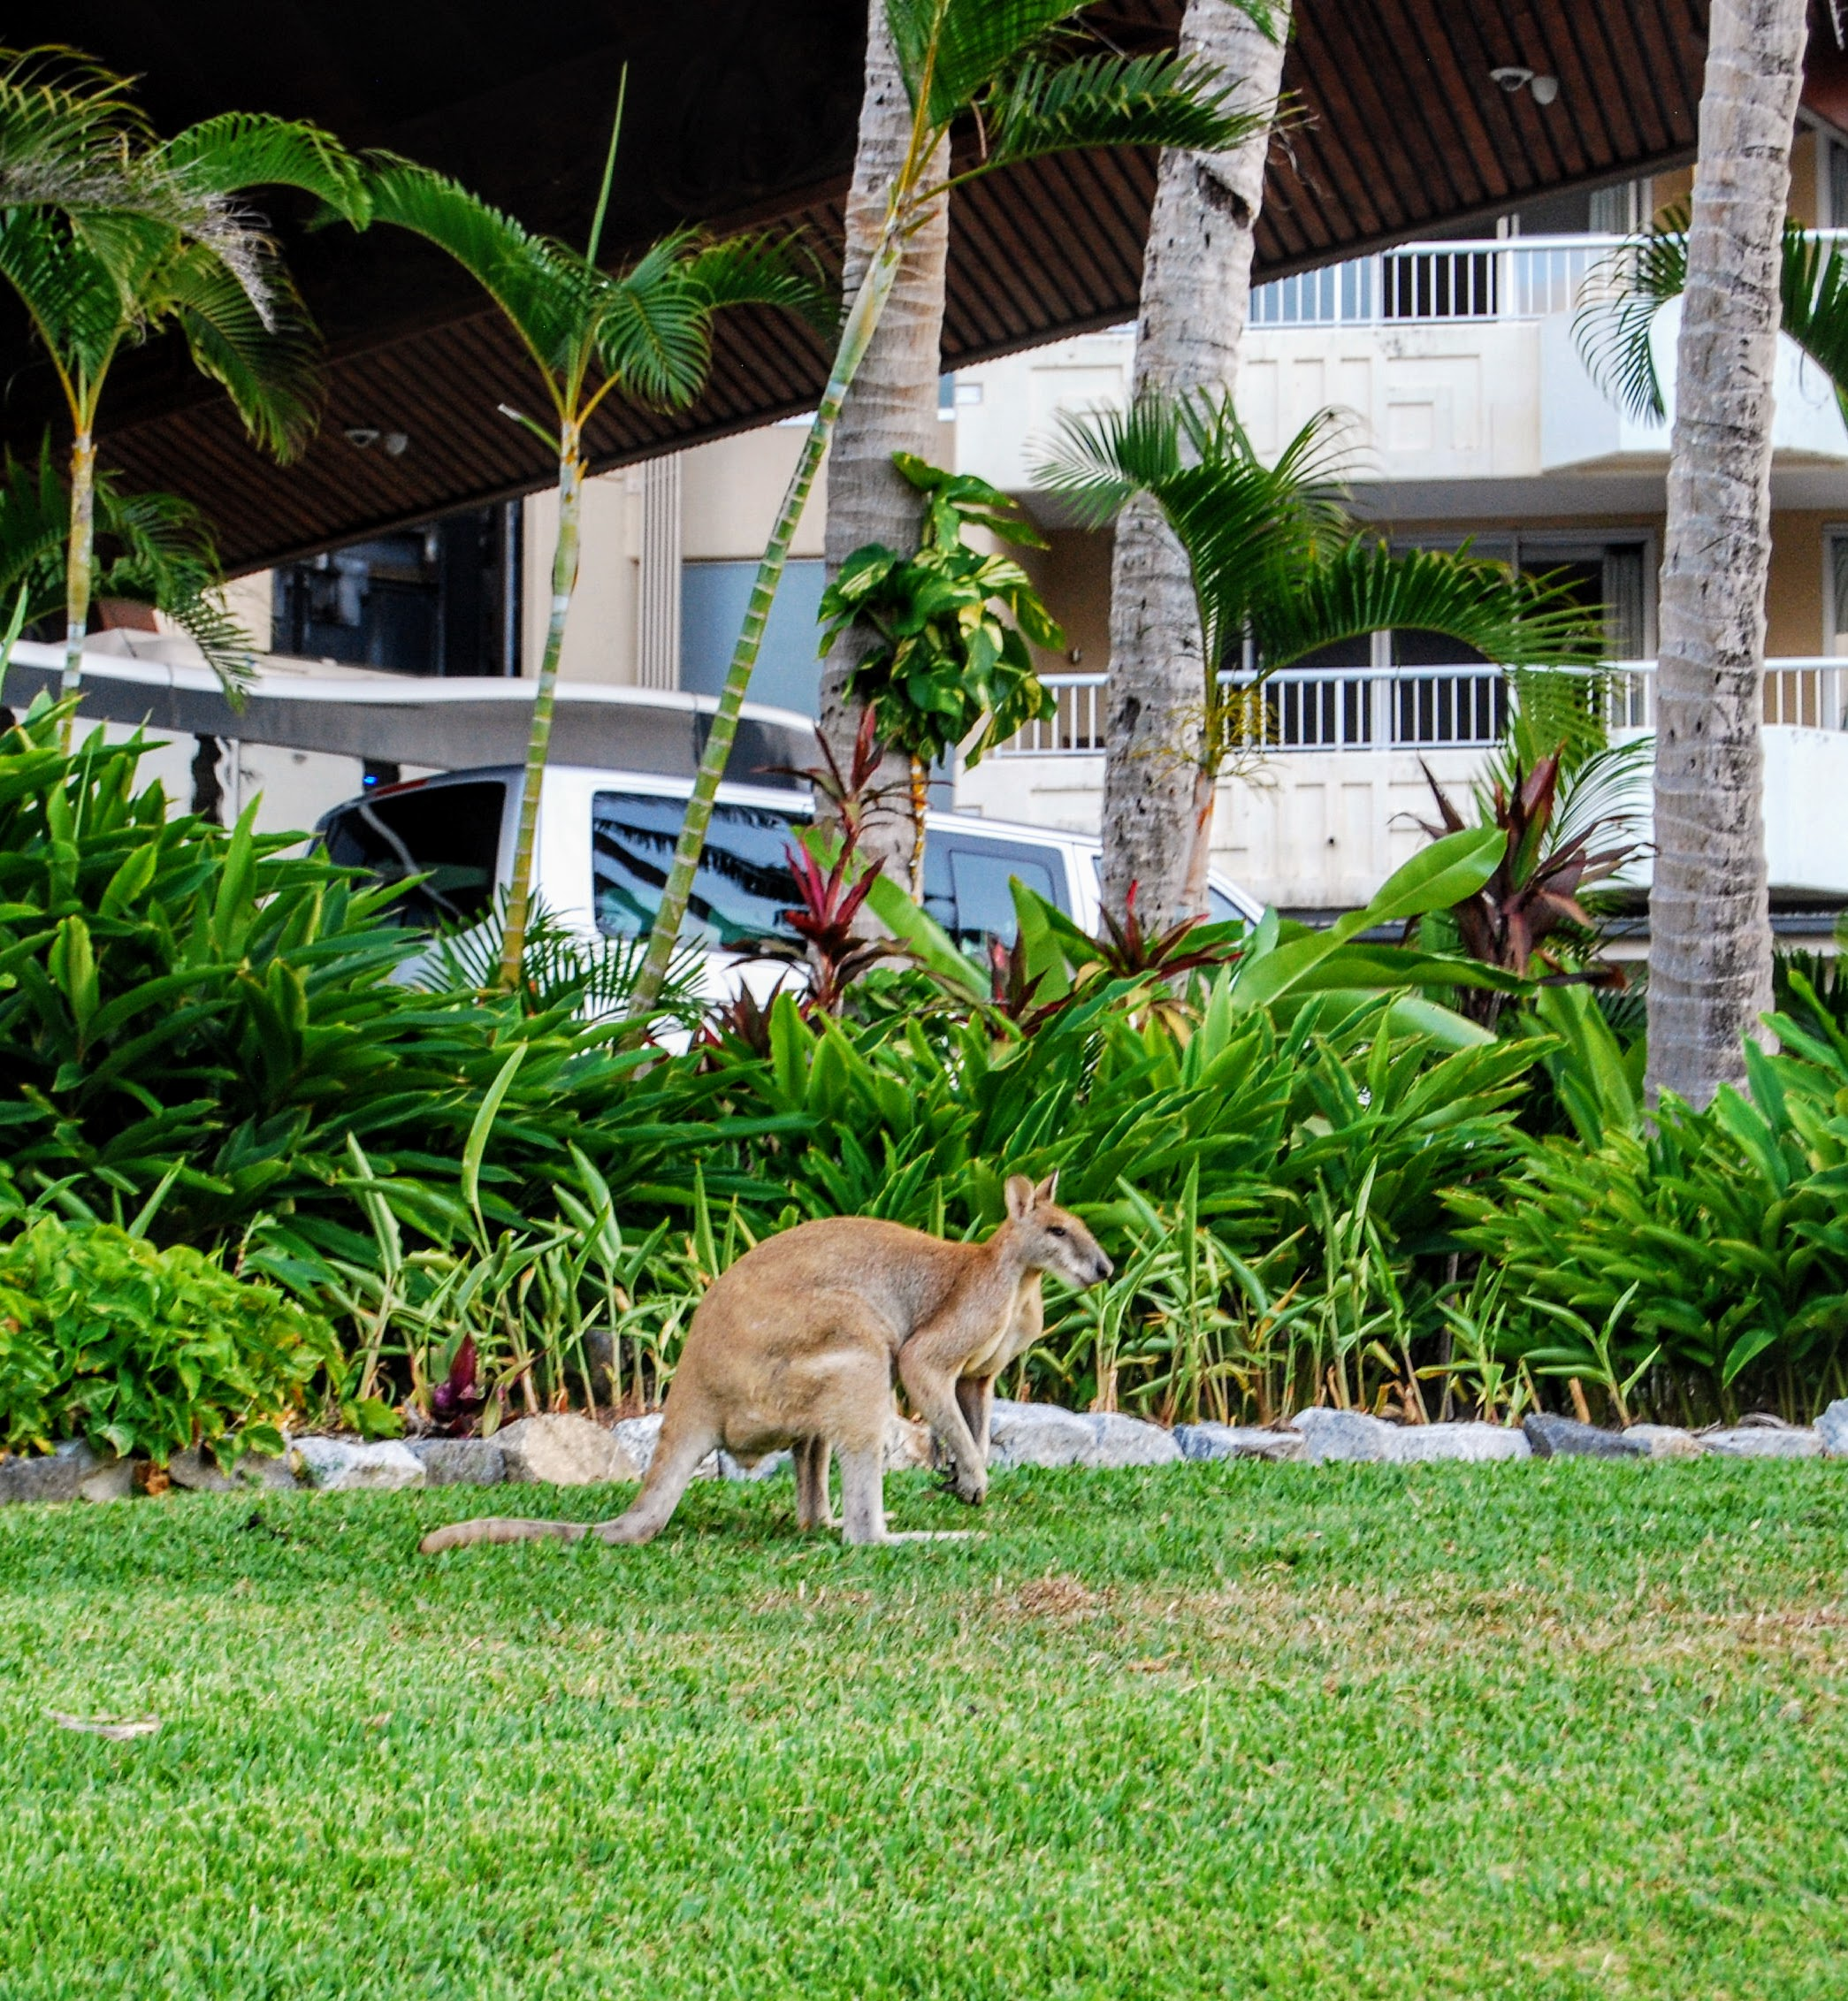 Wallaby version of chillaxing